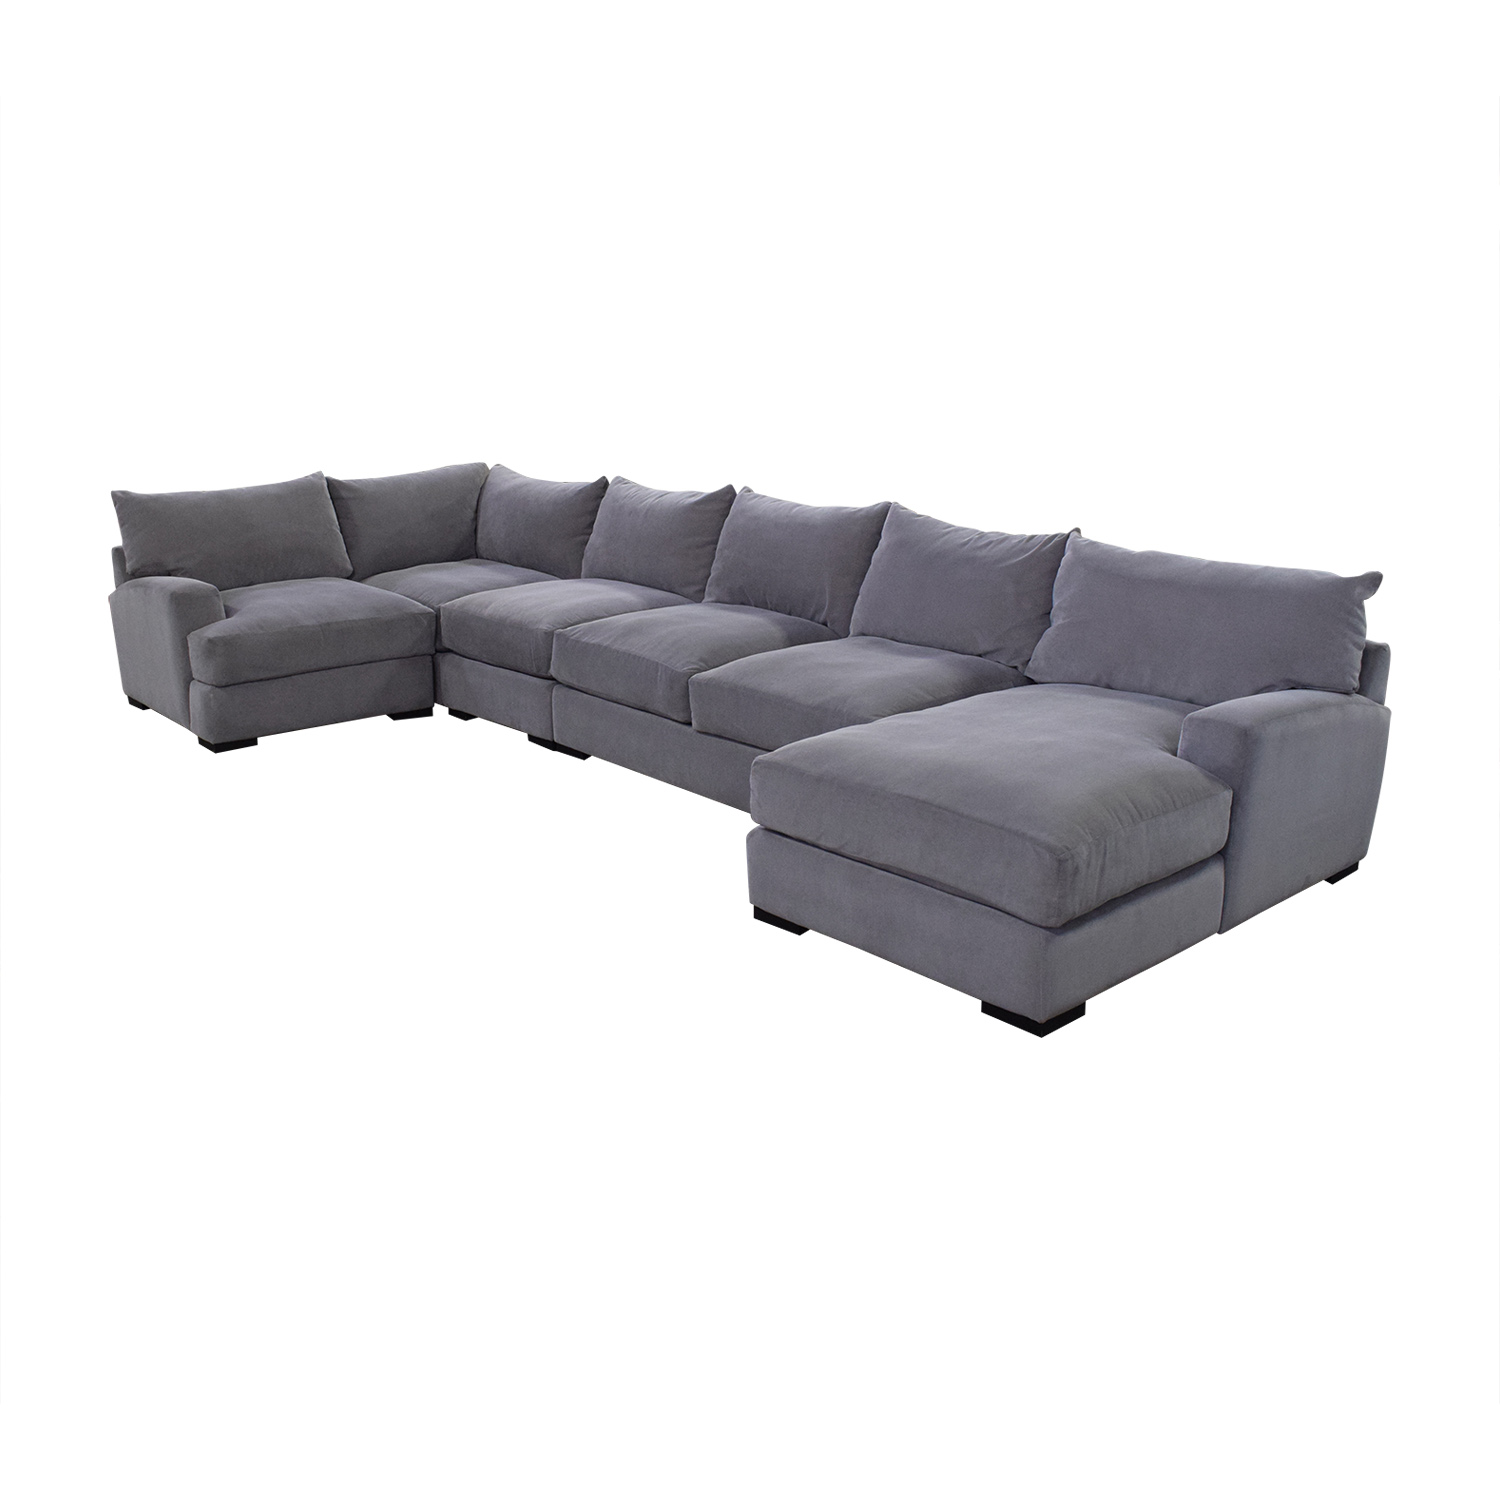 81 Off Macy S Rhyder 5 Piece Fabric Sectional Sofa With Chaise Sofas